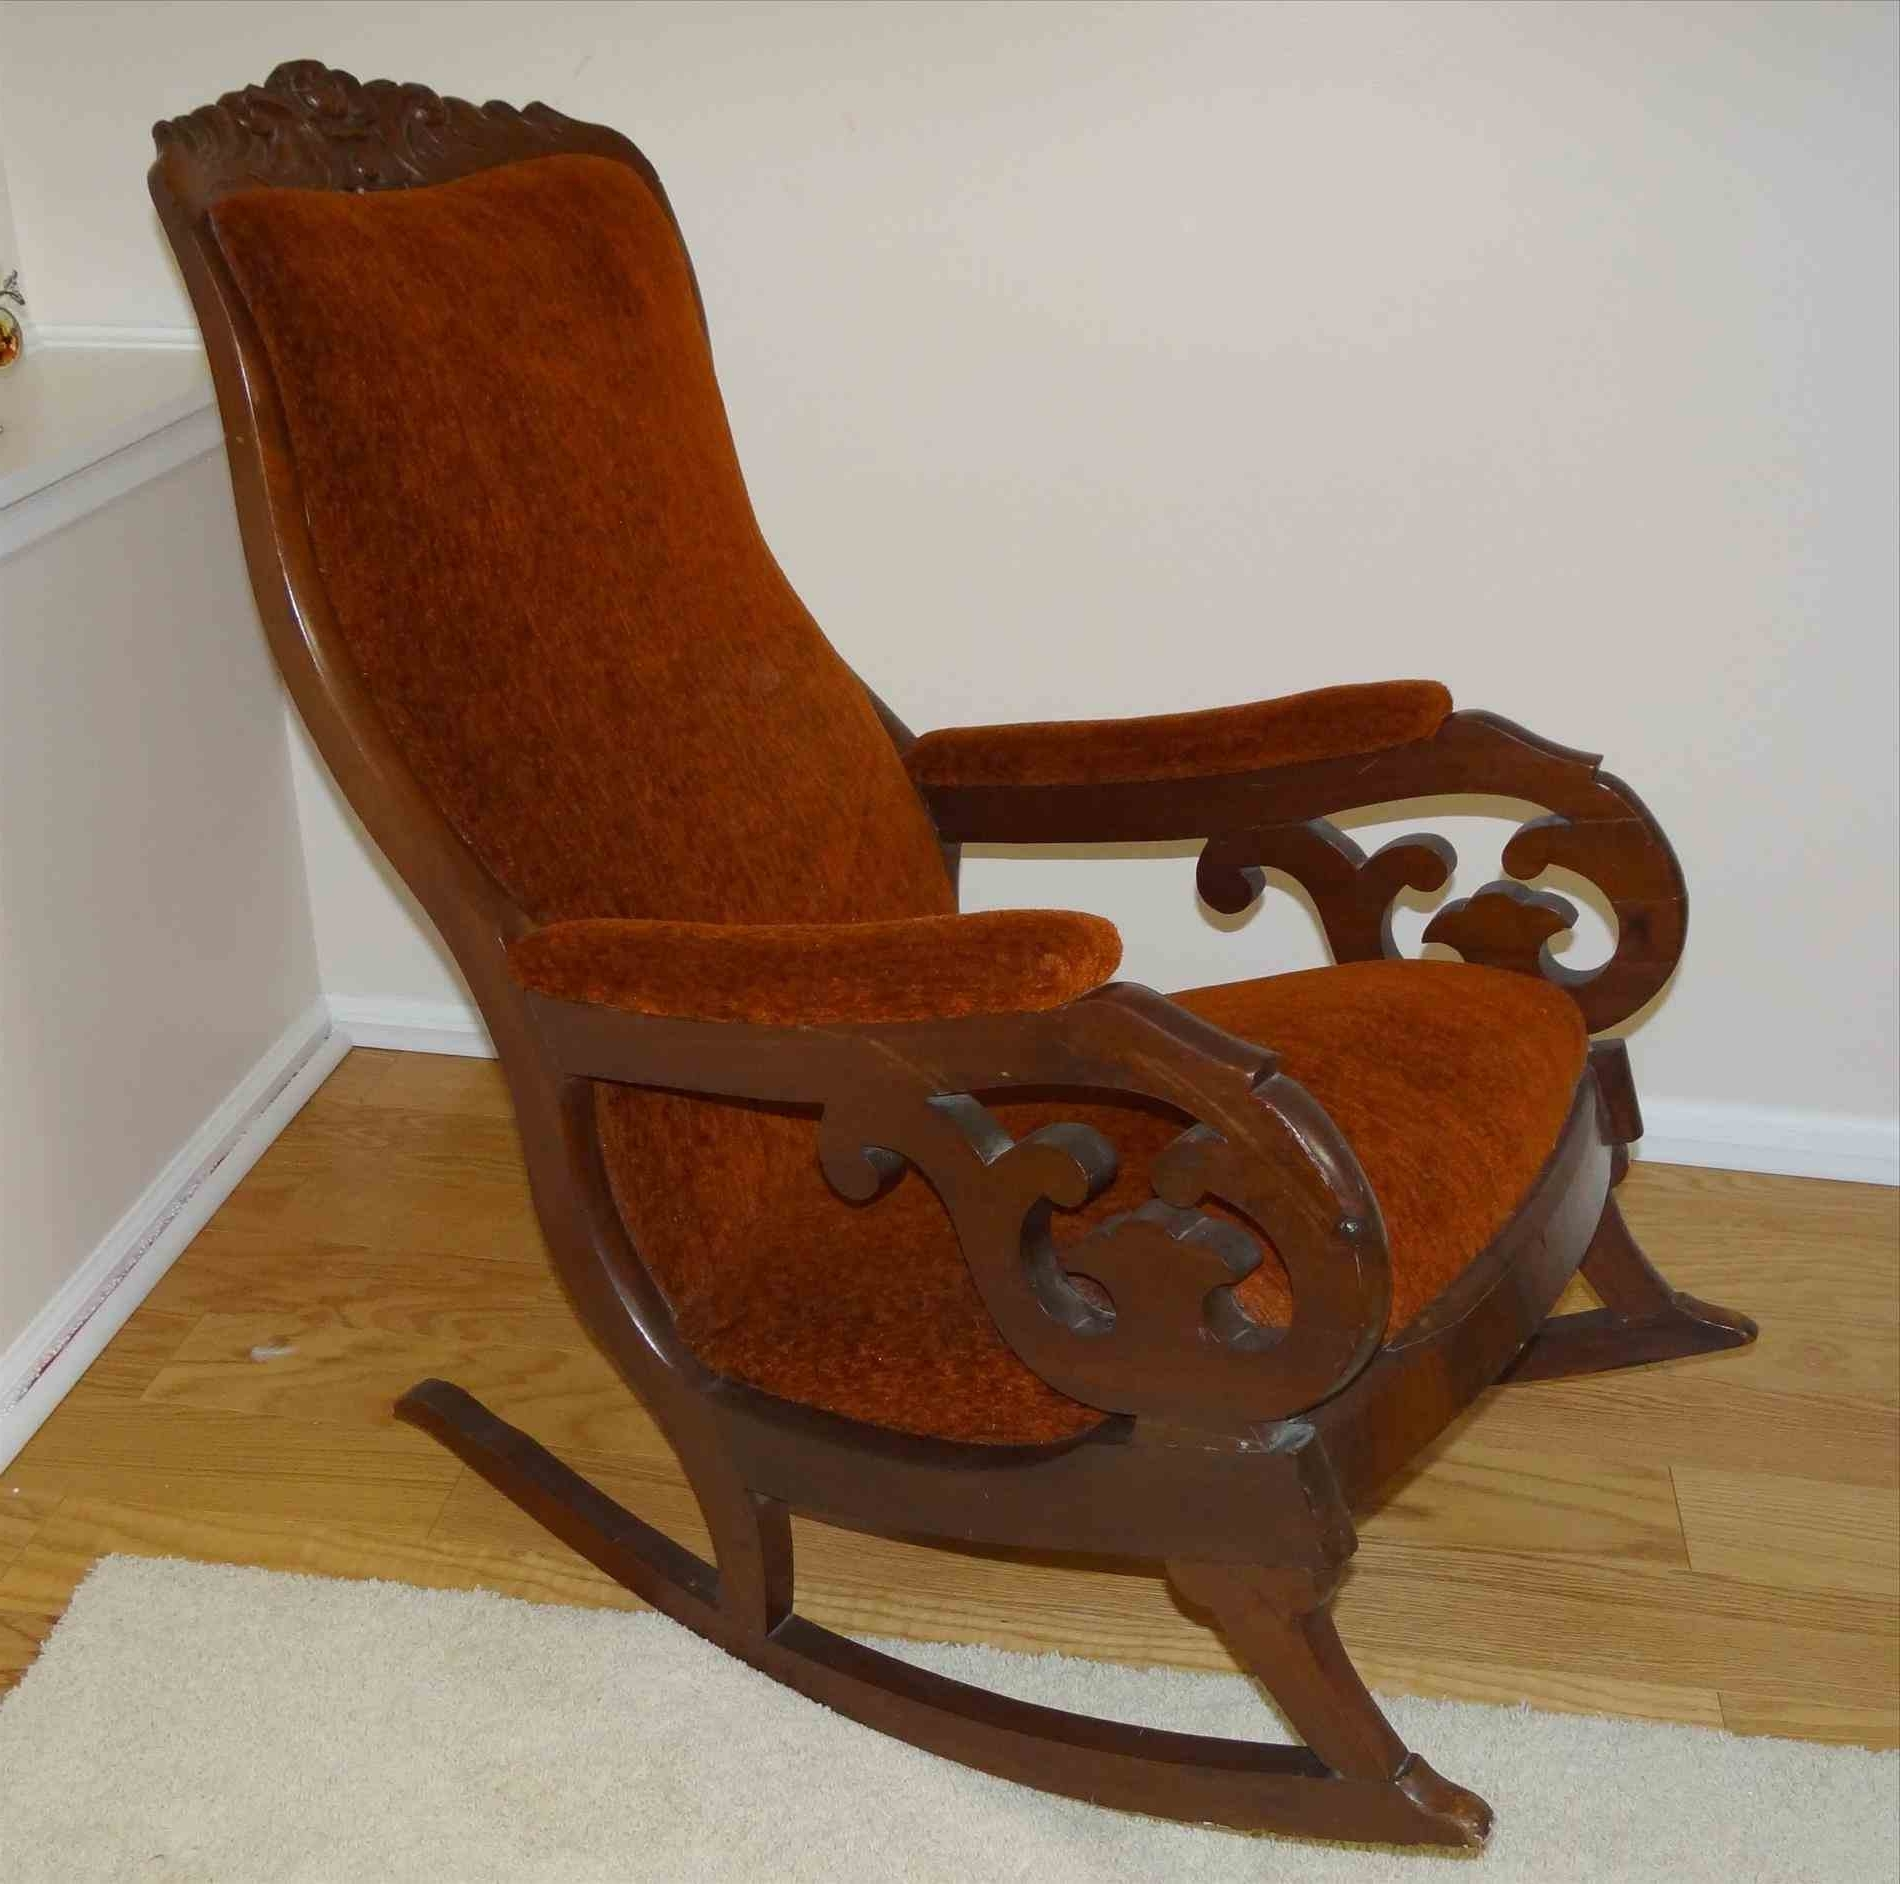 Antique Old Fashioned Rocking Chair Mahogany Upholstered Rocking Regarding Most Popular Old Fashioned Rocking Chairs (Gallery 2 of 20)